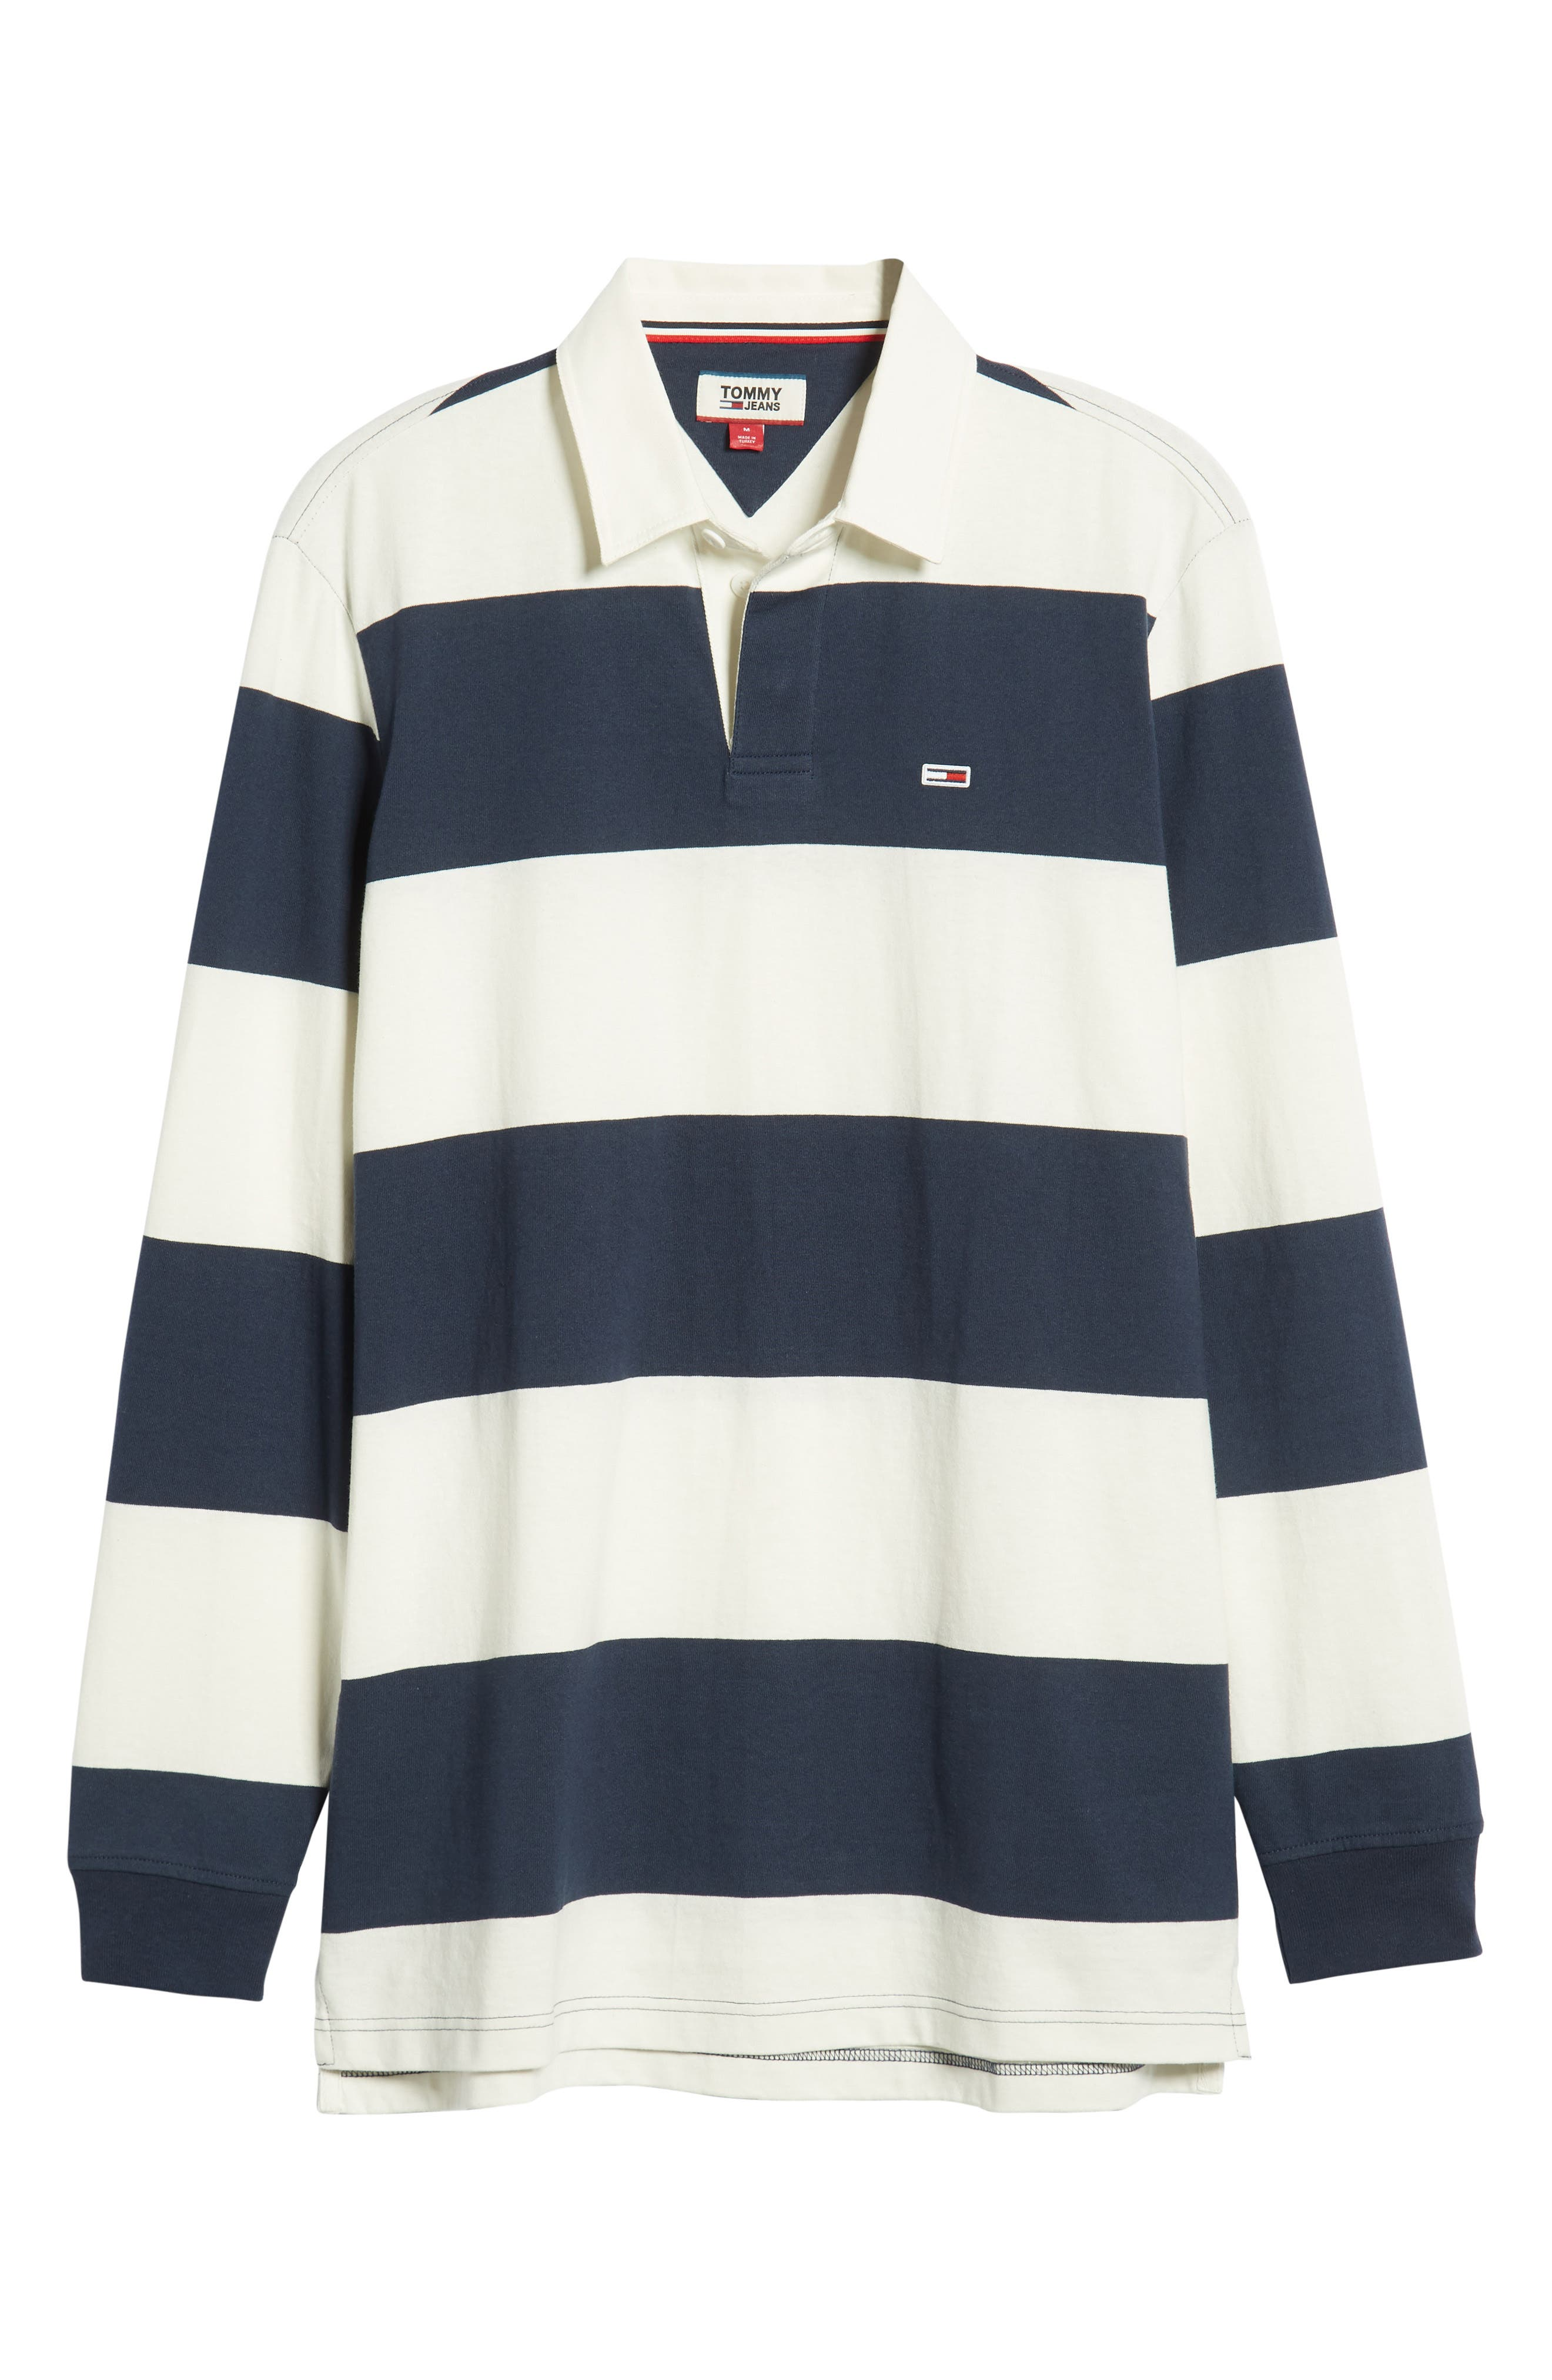 TJM Tommy Classics Rugby Shirt,                             Alternate thumbnail 6, color,                             CLASSIC WHITE / BLACK IRIS